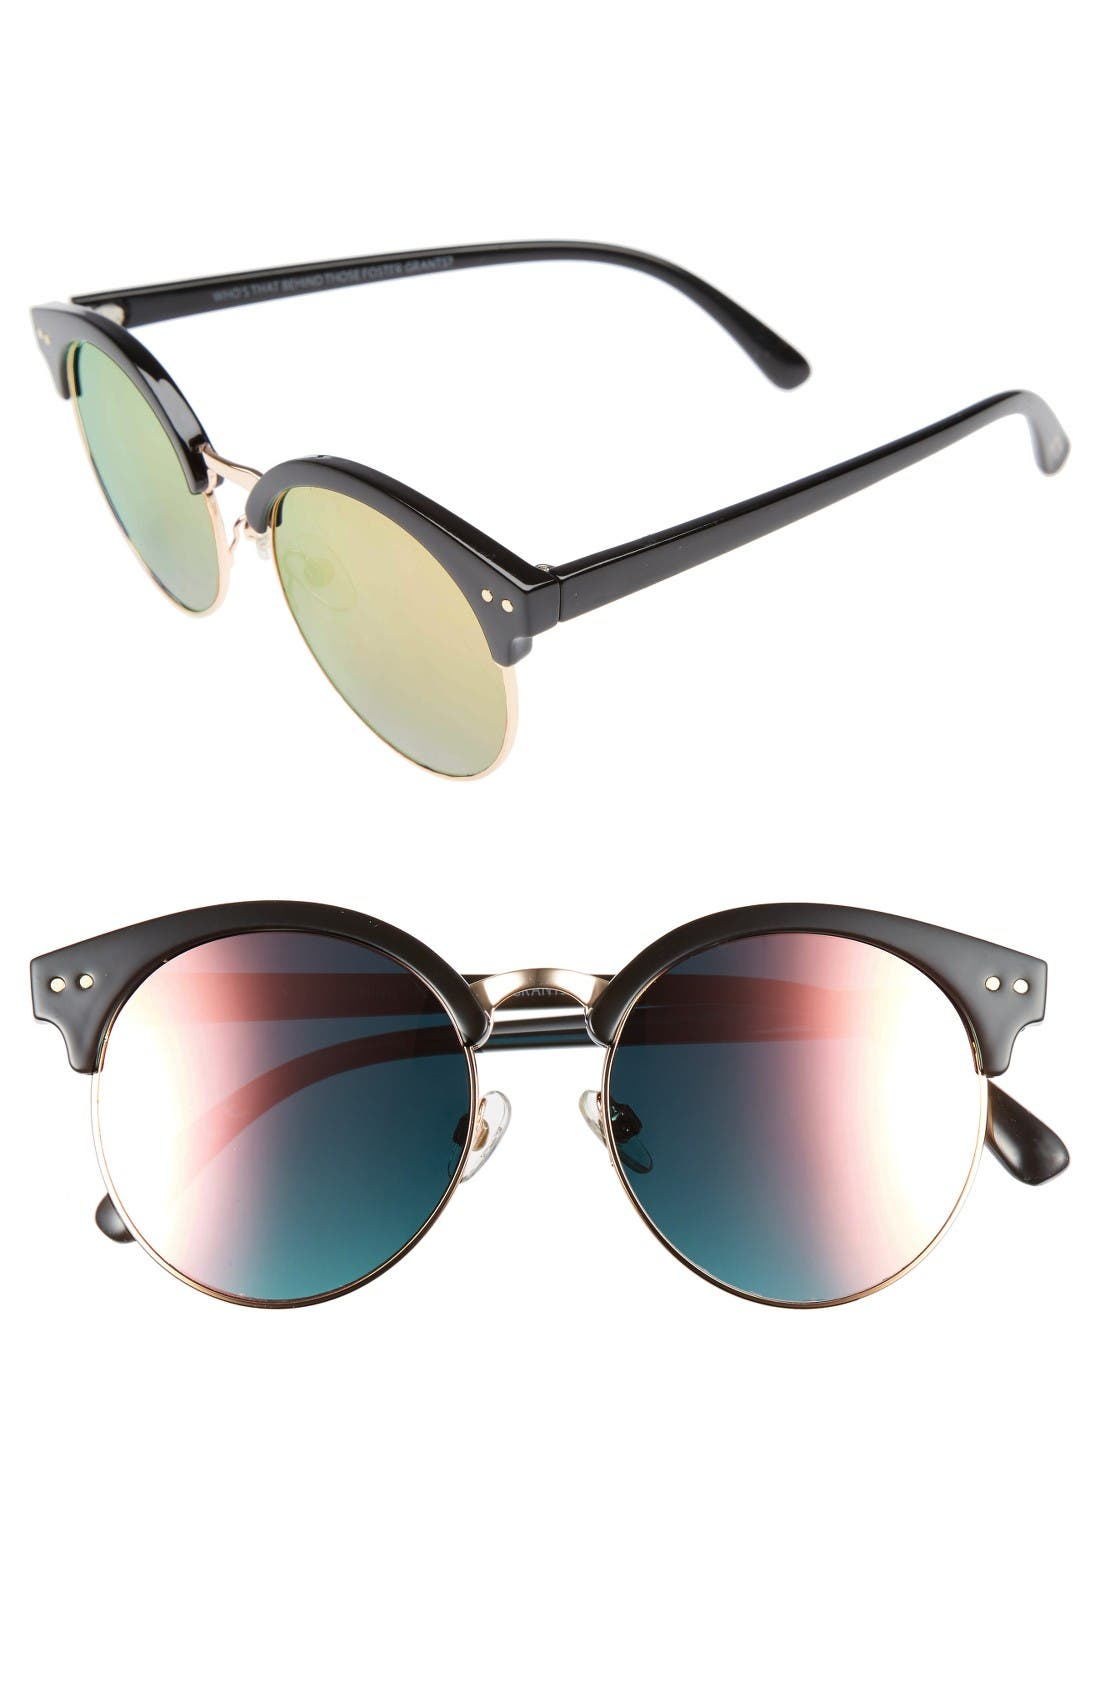 ITEM 8 MG.1 53mm Sunglasses